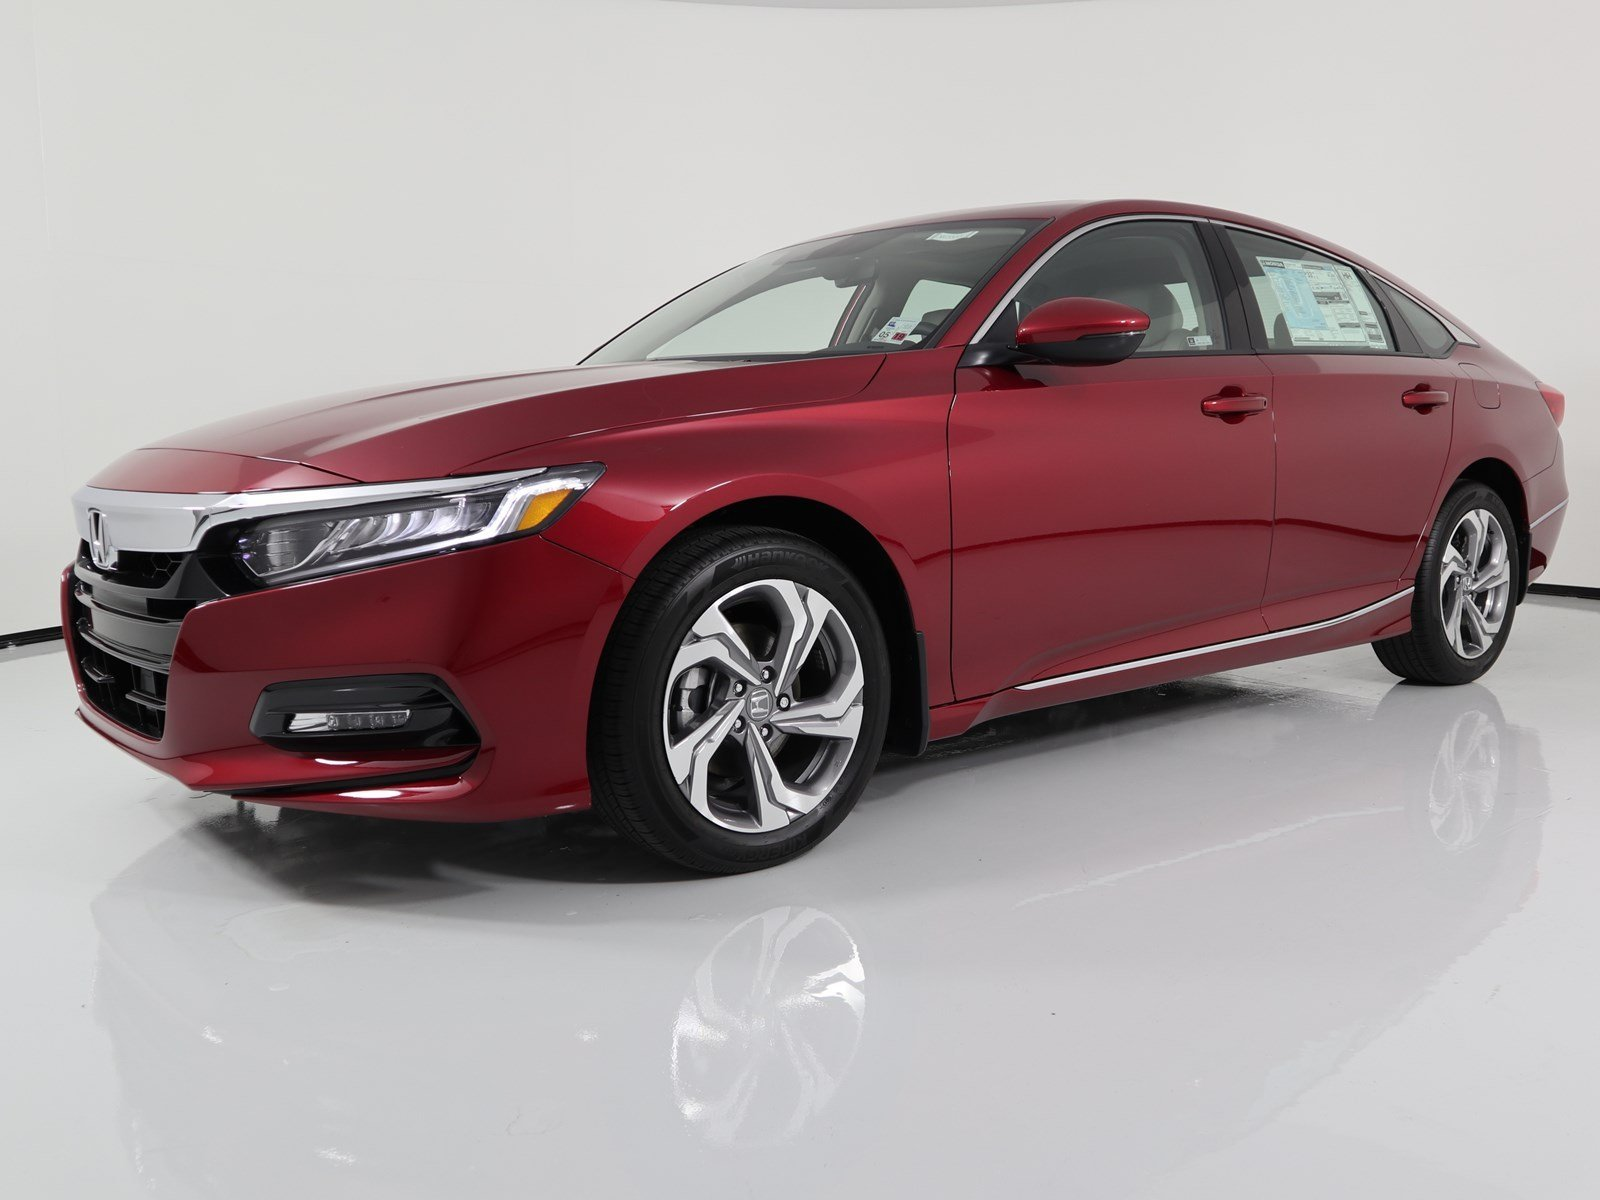 New 2018 Honda Accord Sedan EX L 4dr Car in Bossier City JA